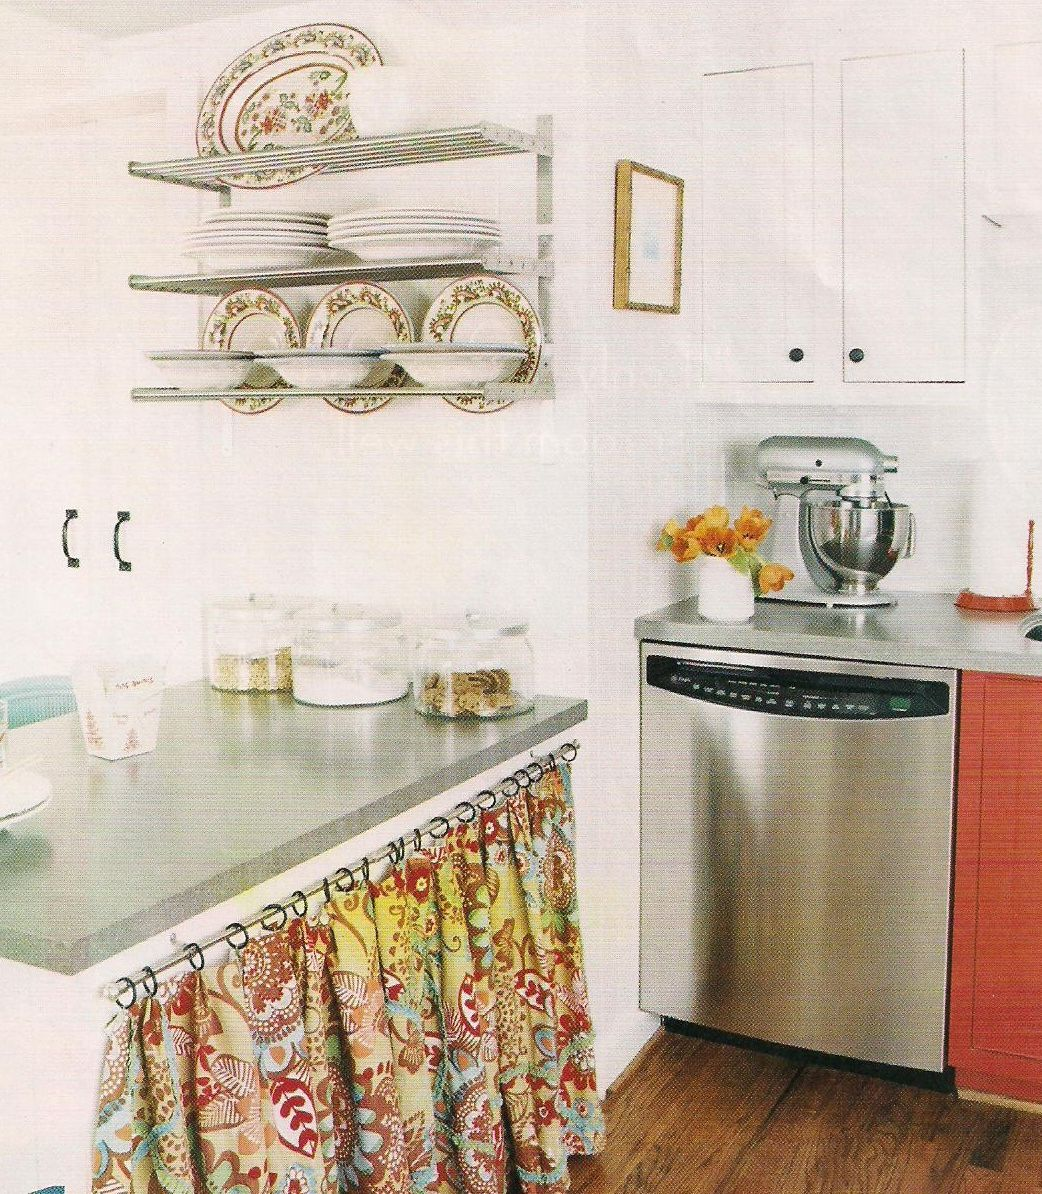 Under Counter Curtains Open Wall Shelf Love The Way The Big Serving Platter And Soup Bowls Totally Match The Kitchen Remodel Home Kitchens Kitchen Cabinets